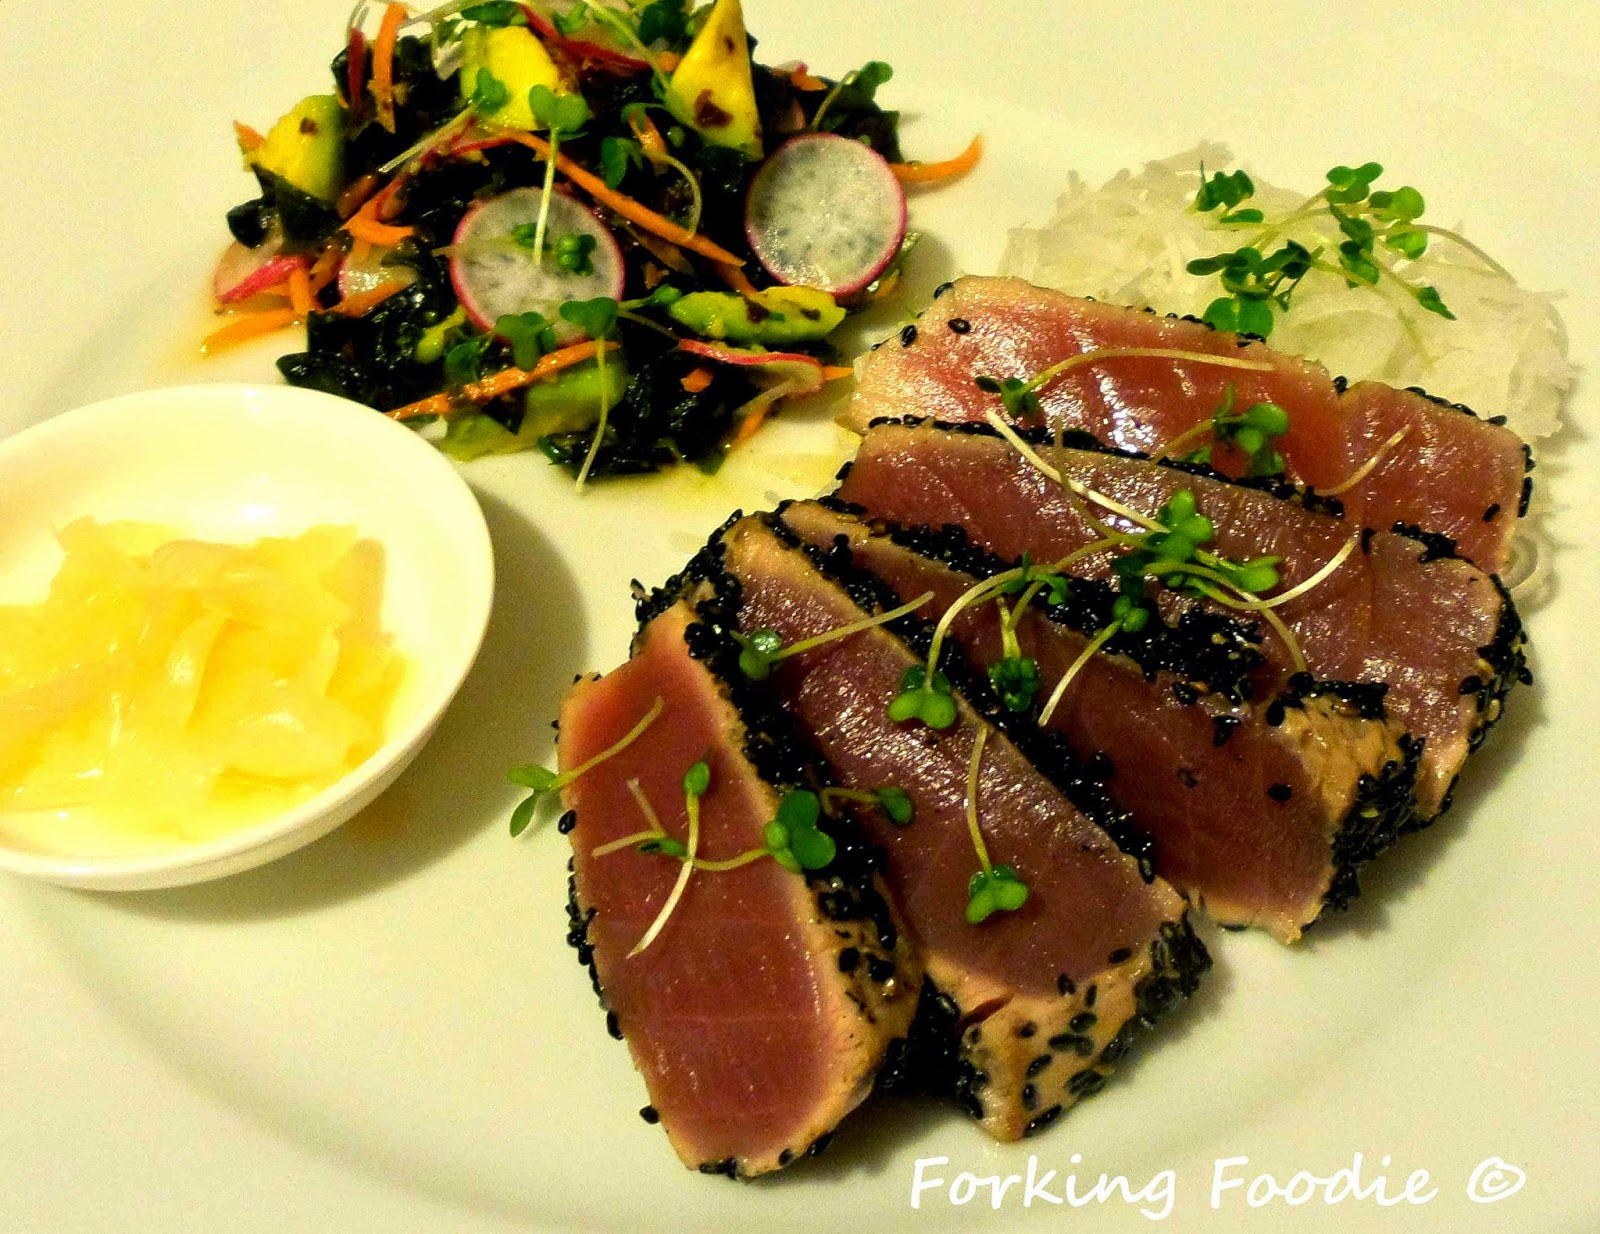 Forking Foodie: Seared Sesame Tuna with a Soy, Ginger and ...